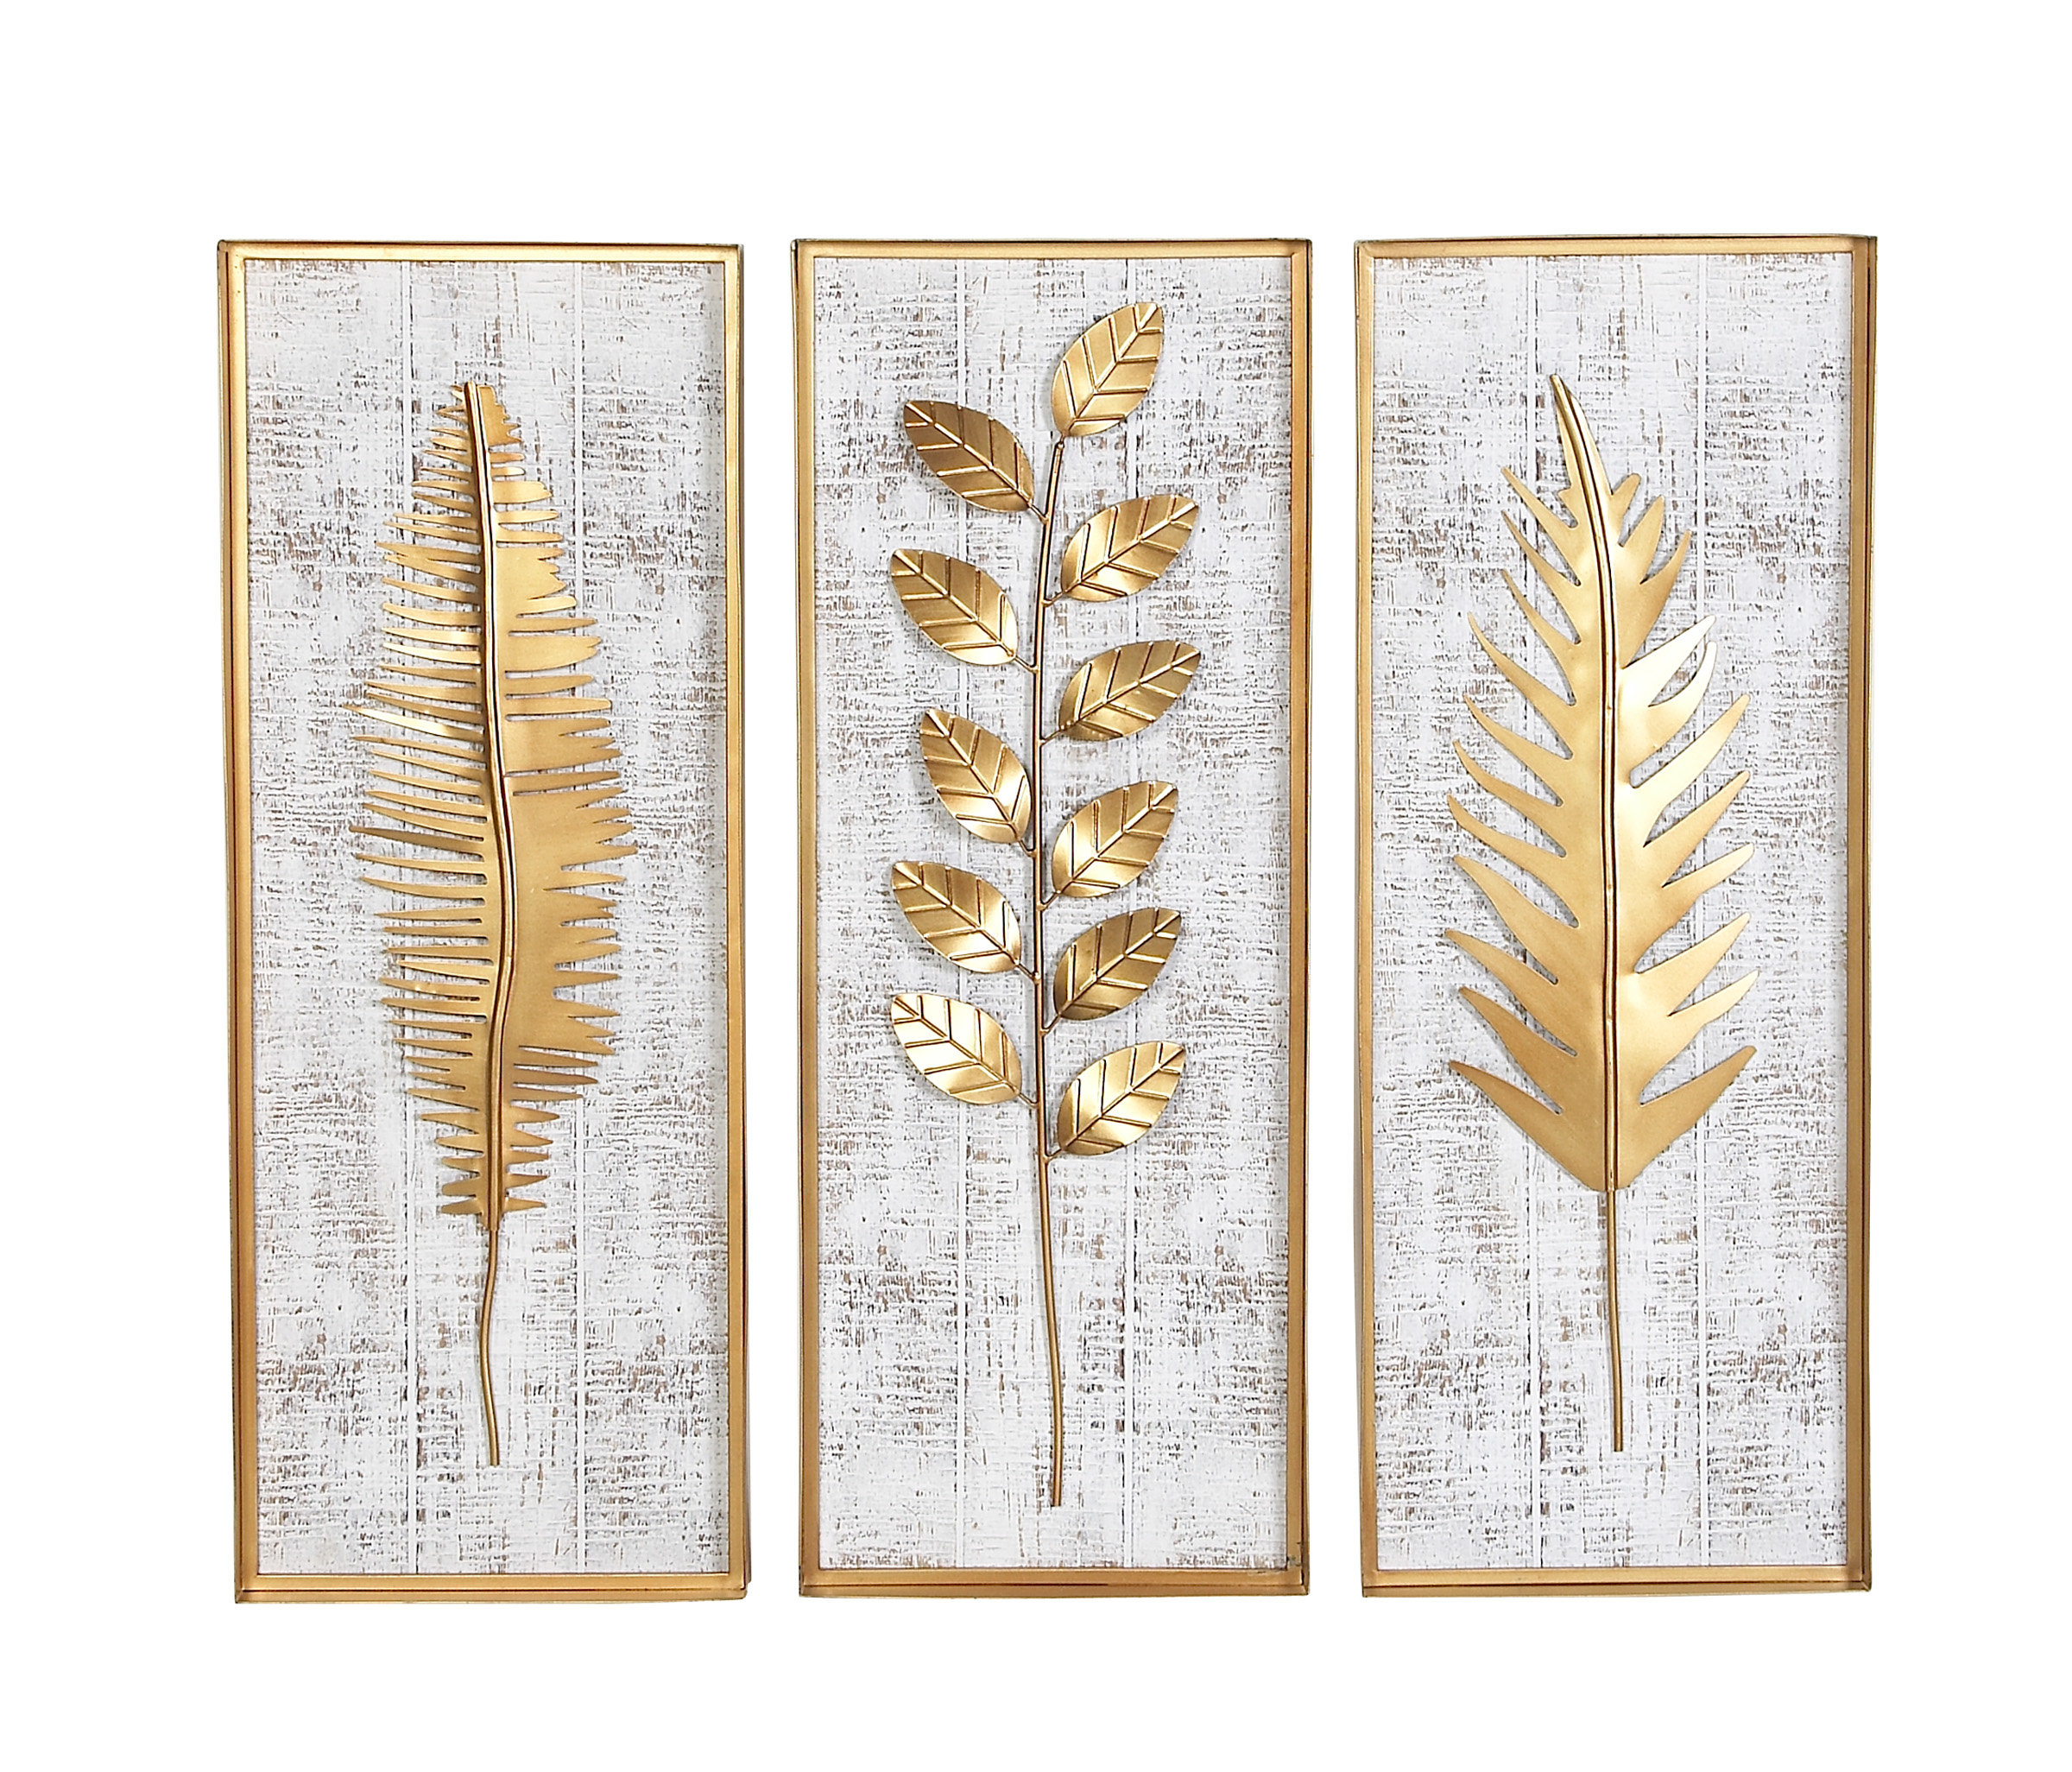 Goodfellow 3 Piece Rectangular Metal Wall Decor Set In 4 Piece Metal Wall Plaque Decor Sets (View 14 of 30)